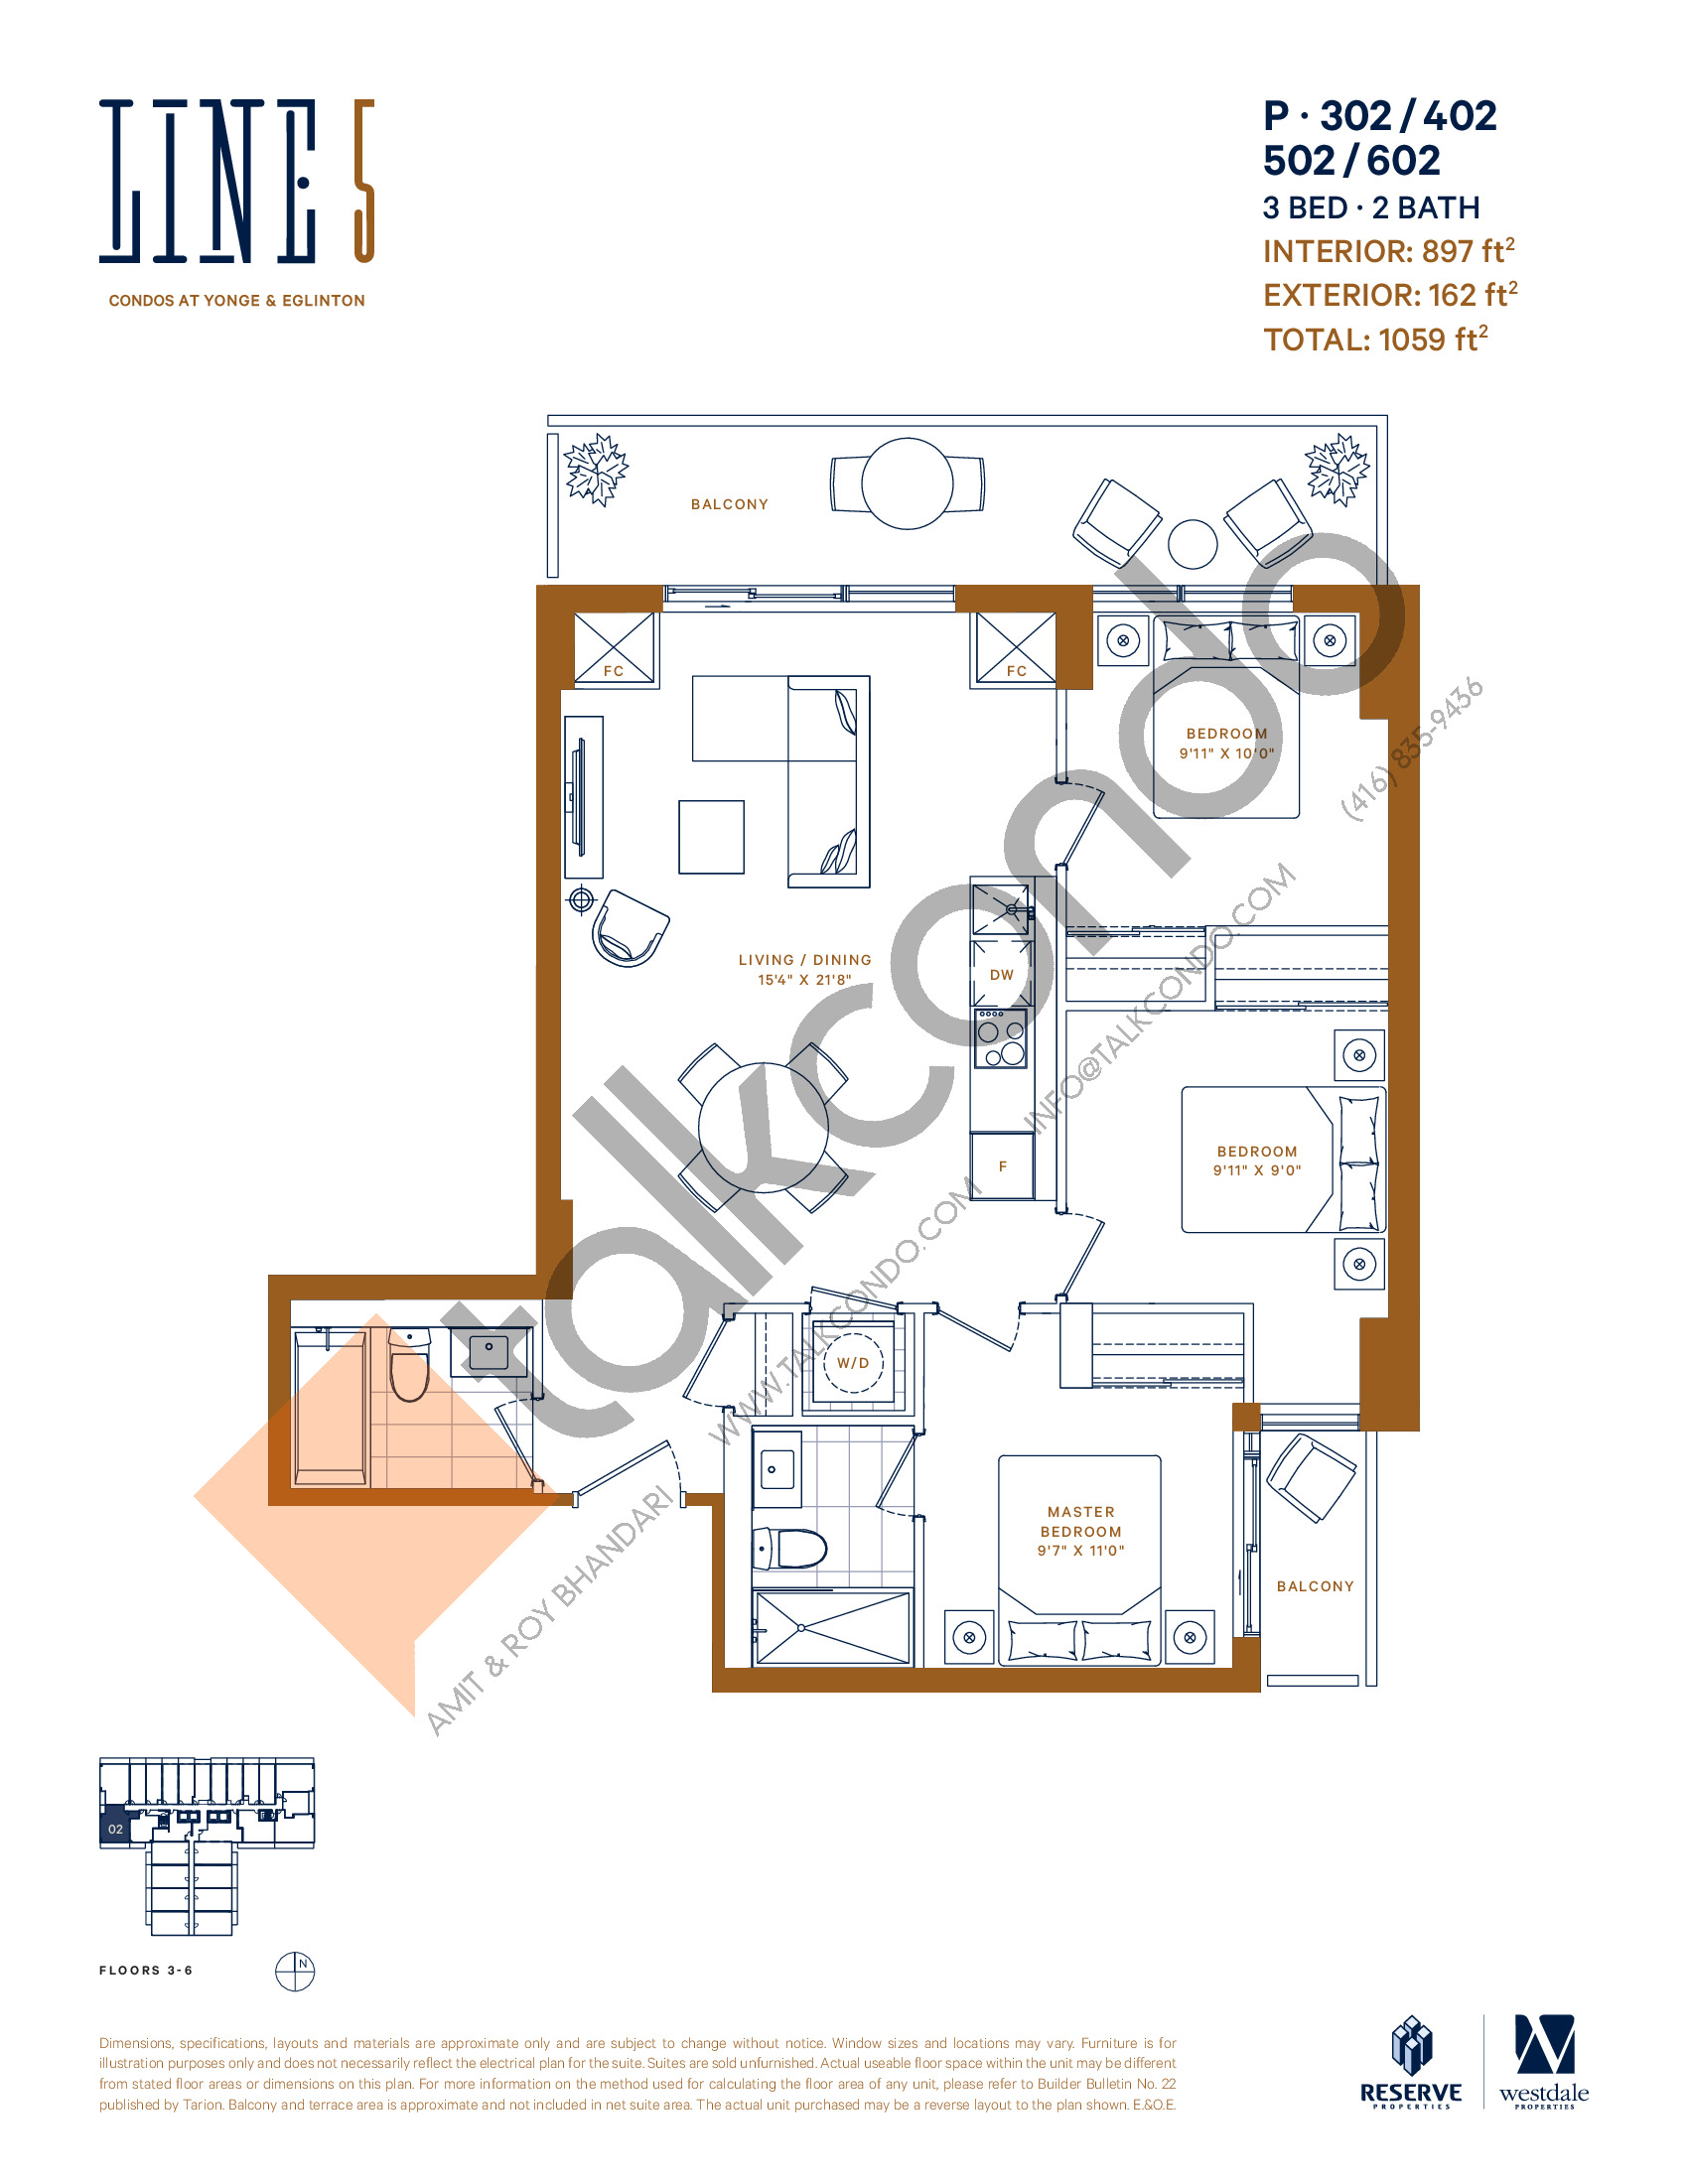 P-302 / 402 / 502 / 602 Floor Plan at Line 5 Condos - 897 sq.ft